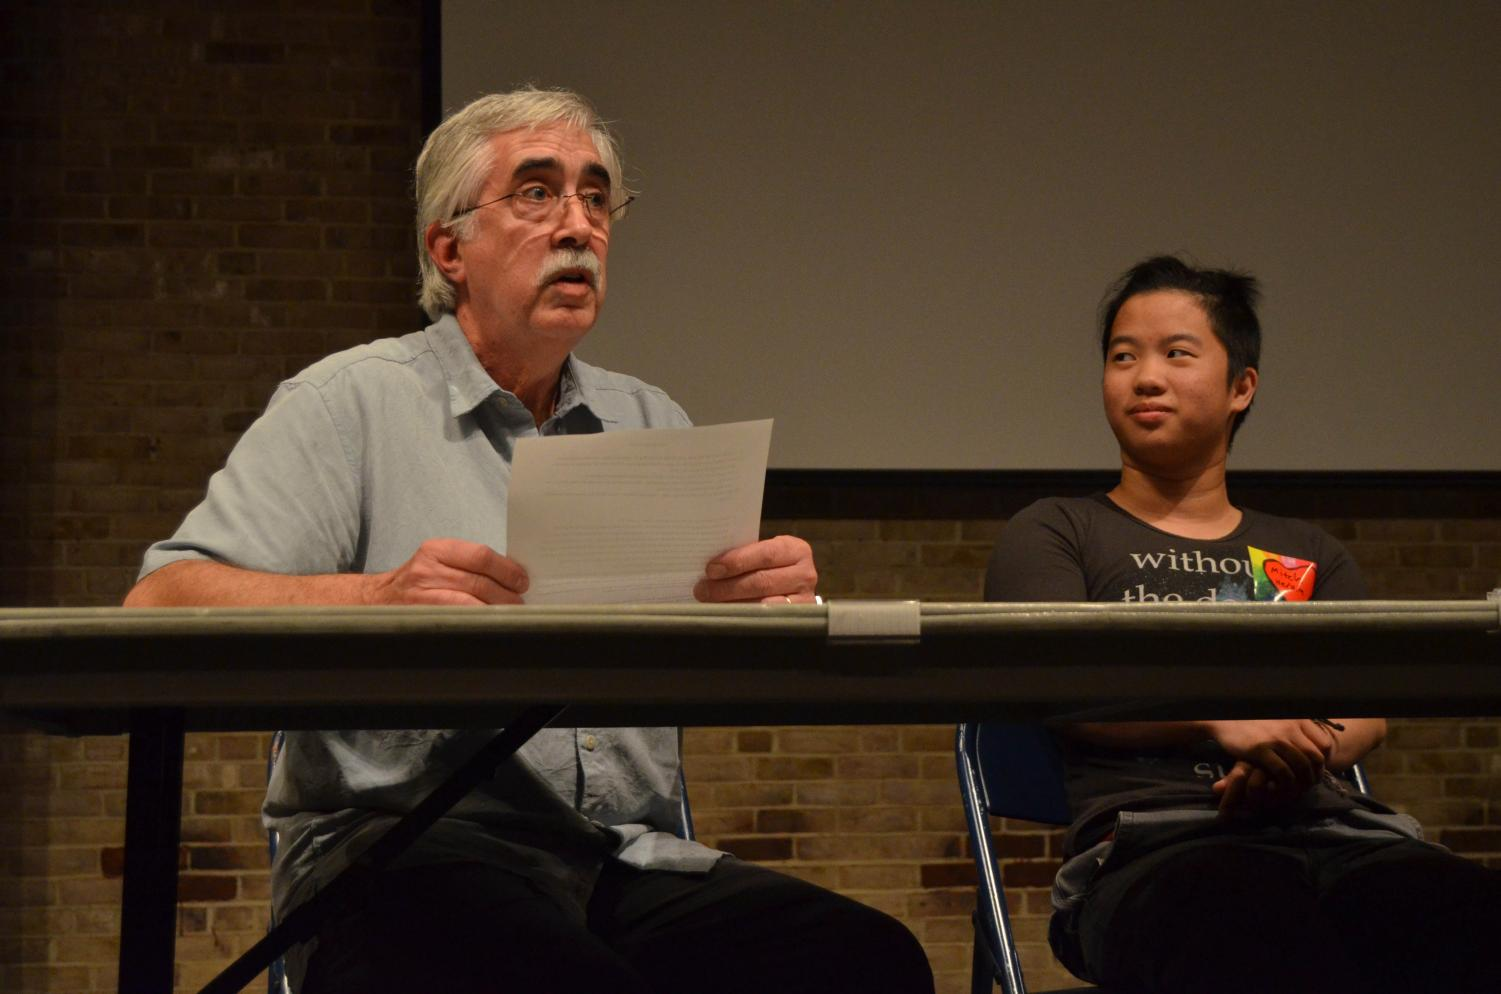 English professor Dave Meng discusses his experience as a parent of a transgender child.